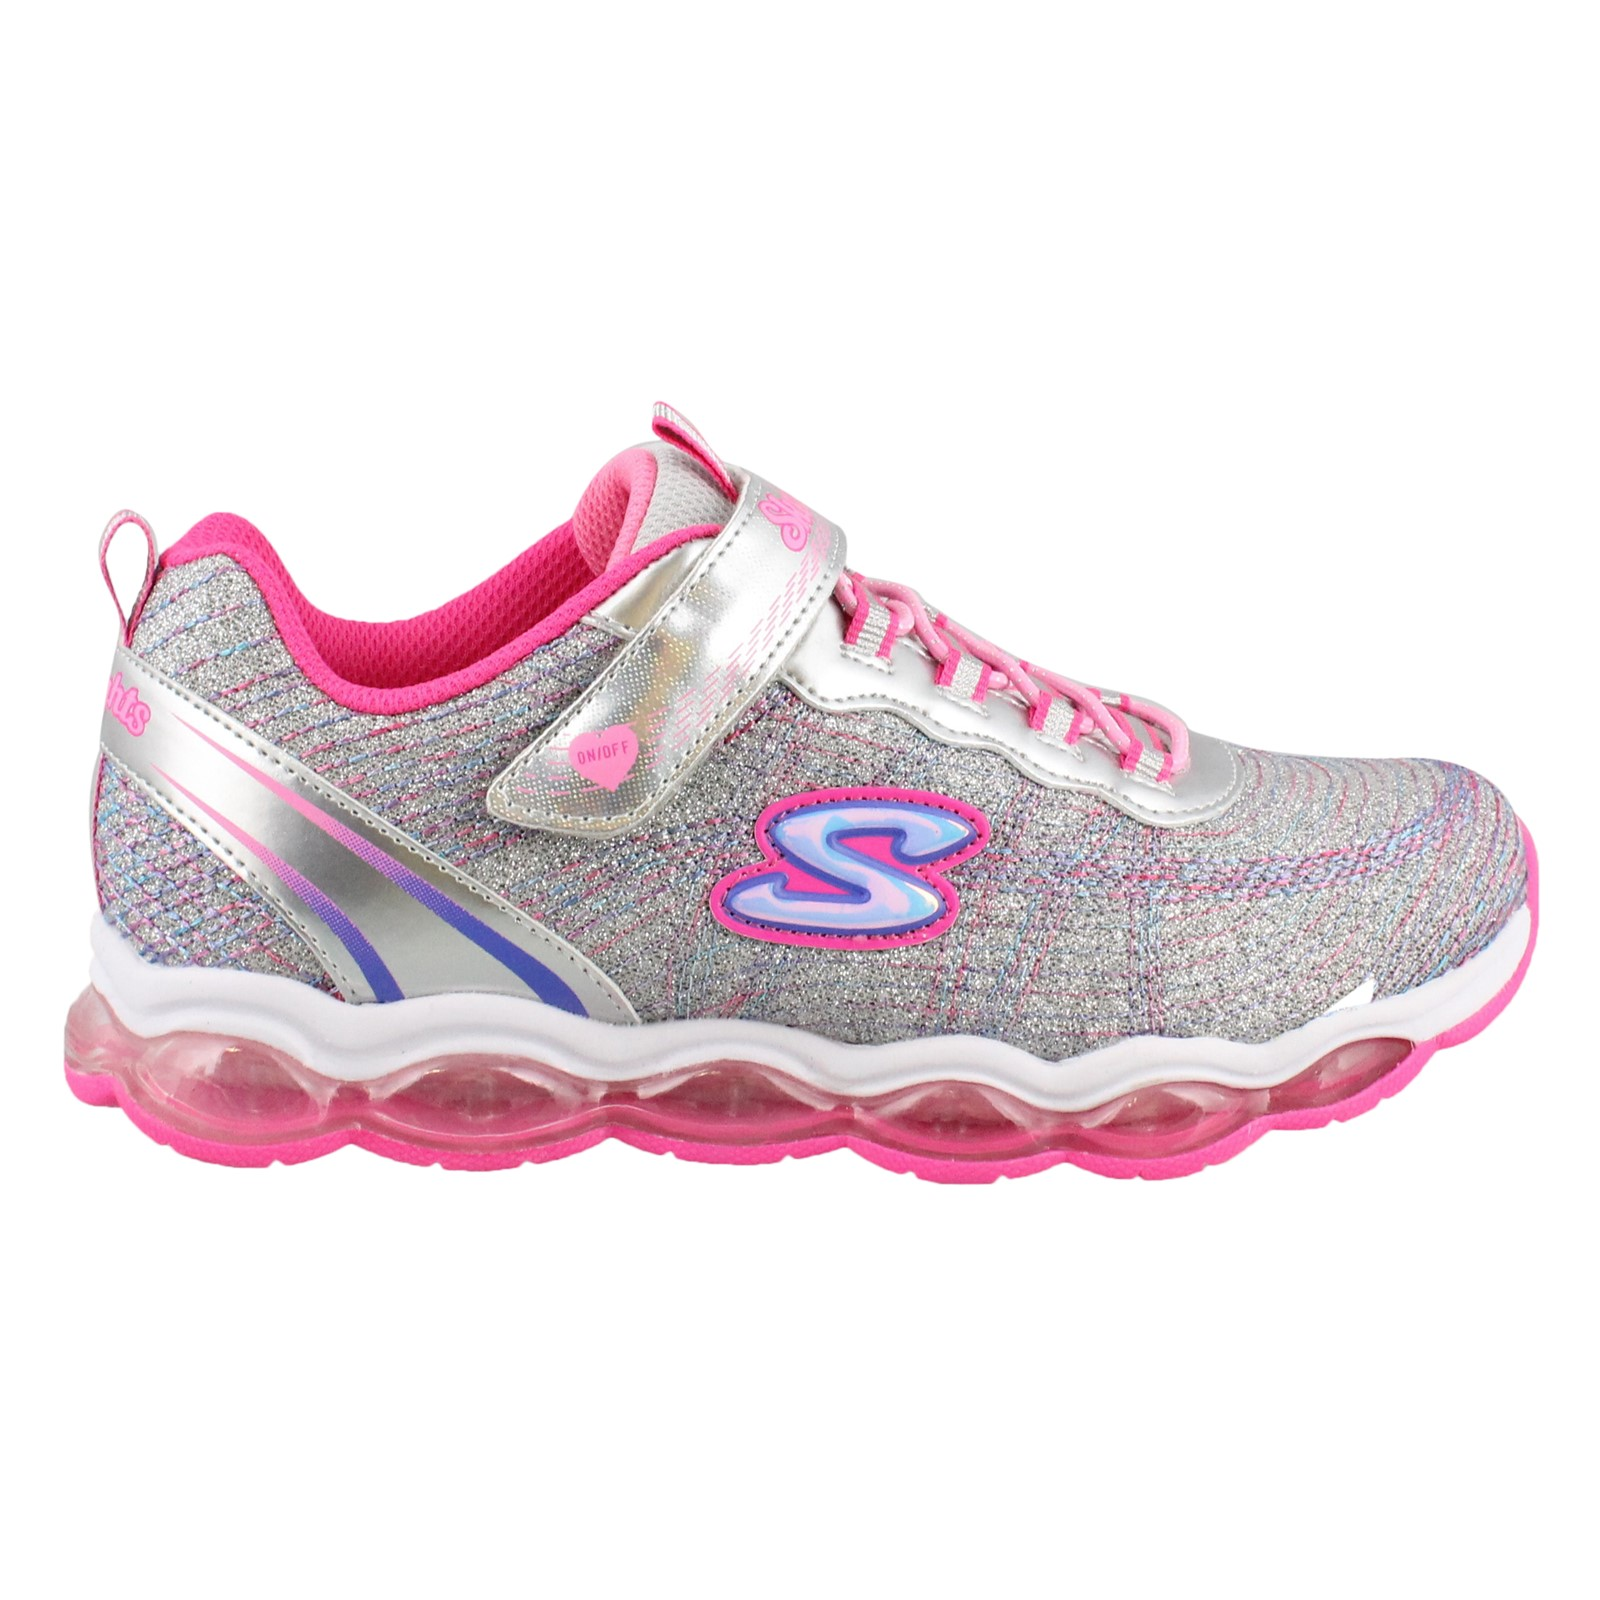 Girl's Skechers, S Lights Glimmer Lites Sneakers